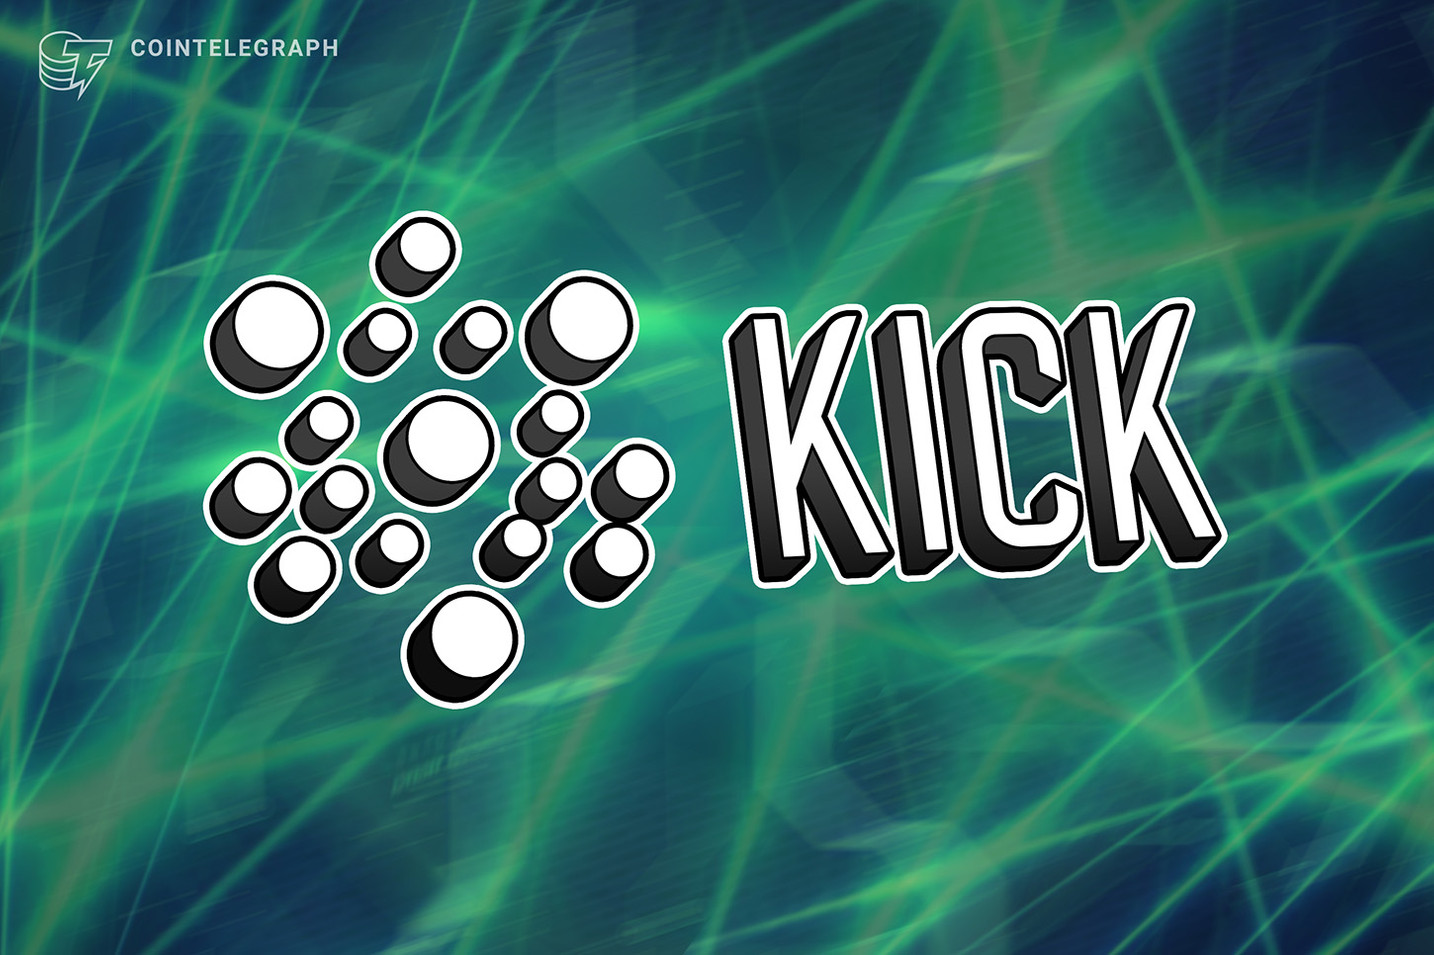 Kick.io spearheads the transition from Ethereum to Cardano-based DeFi